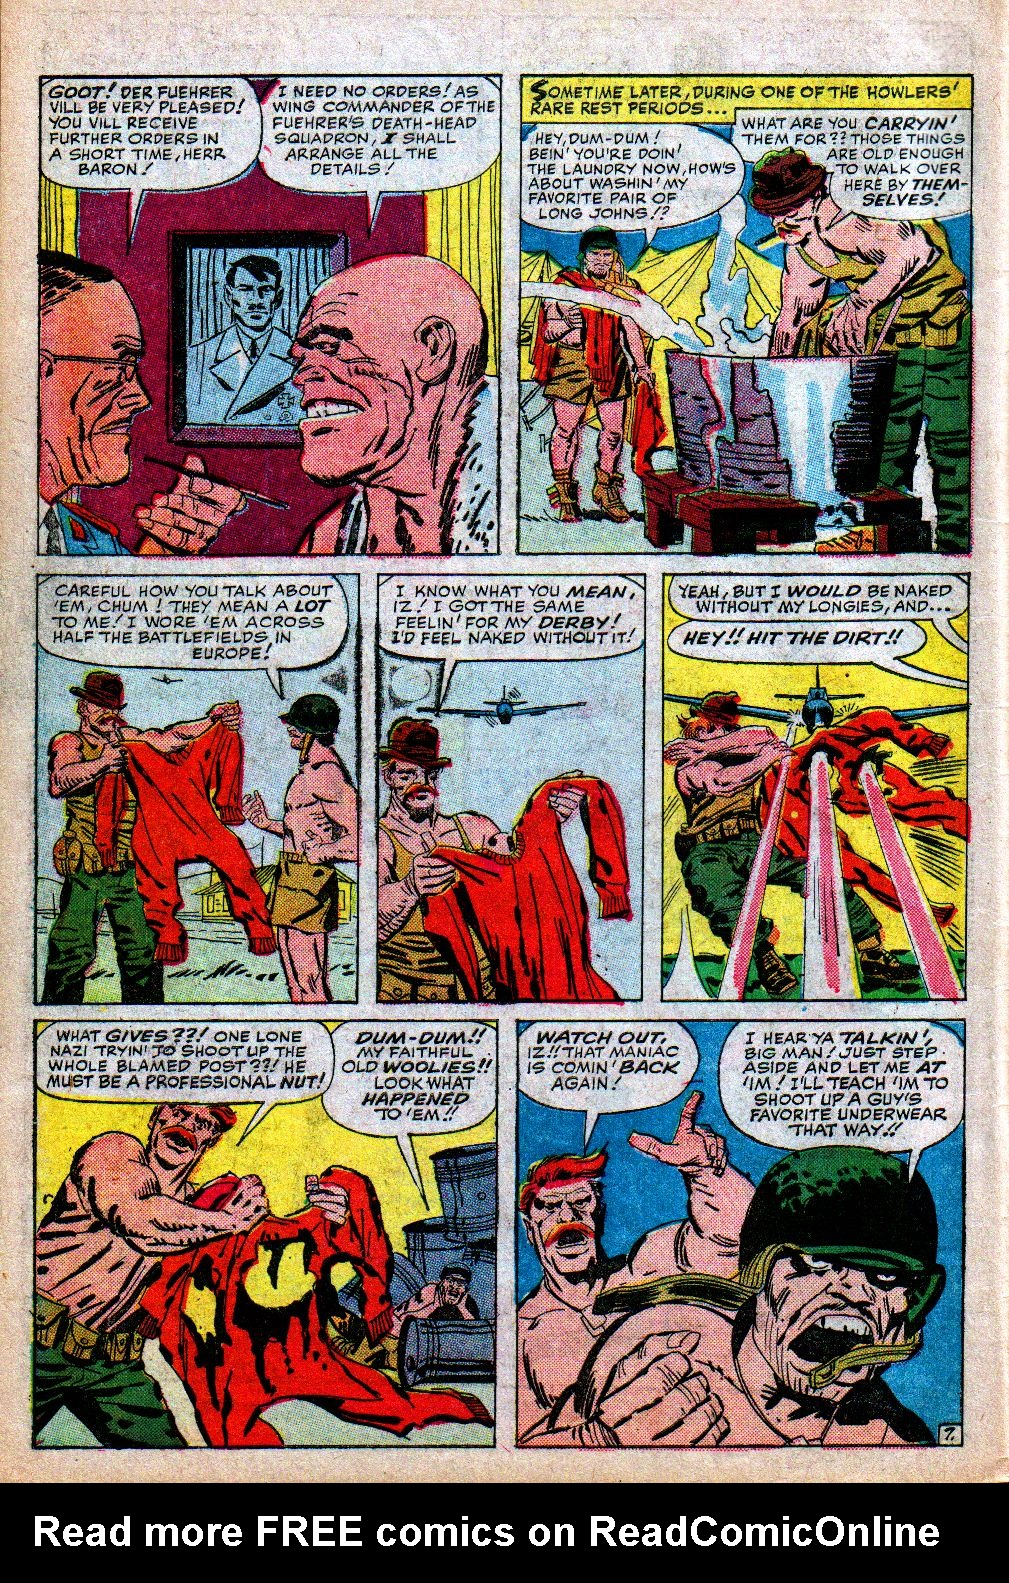 Read online Sgt. Fury comic -  Issue #5 - 10